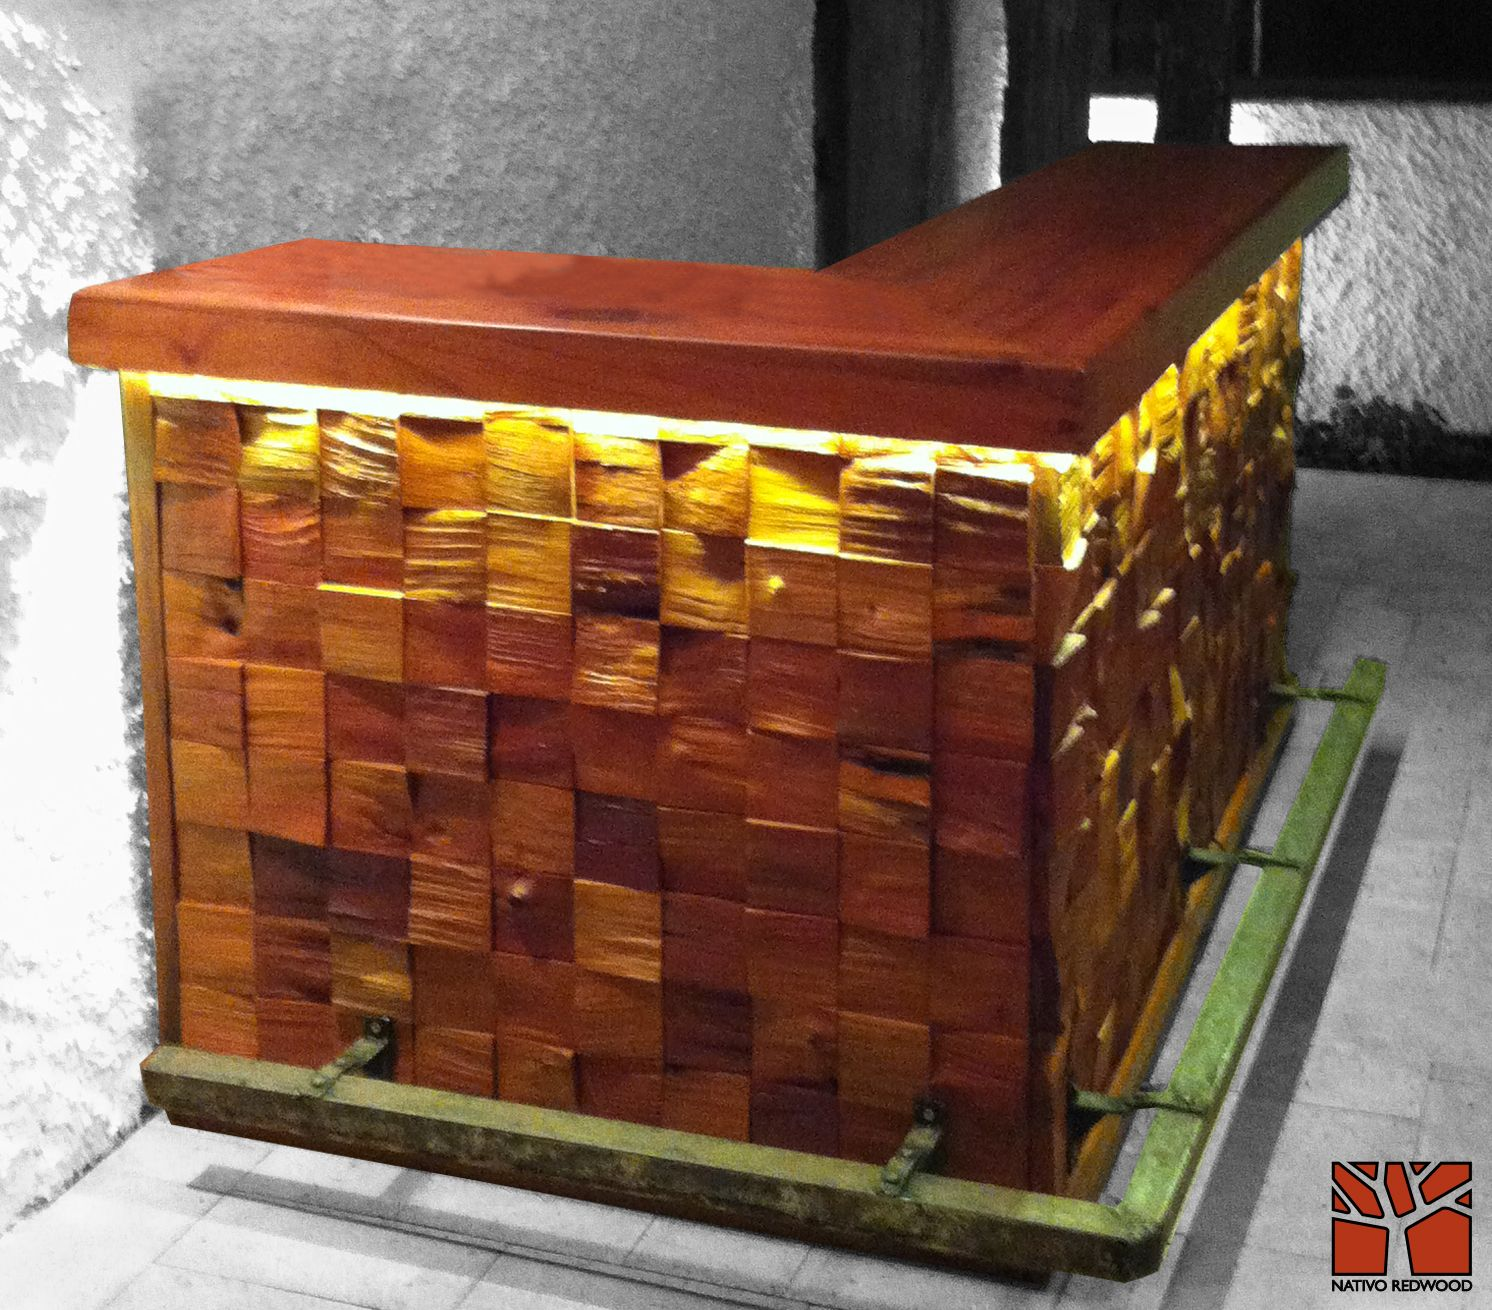 Nativo redwood bar de roble rustico con bordes con for Bar rustico de madera nativa